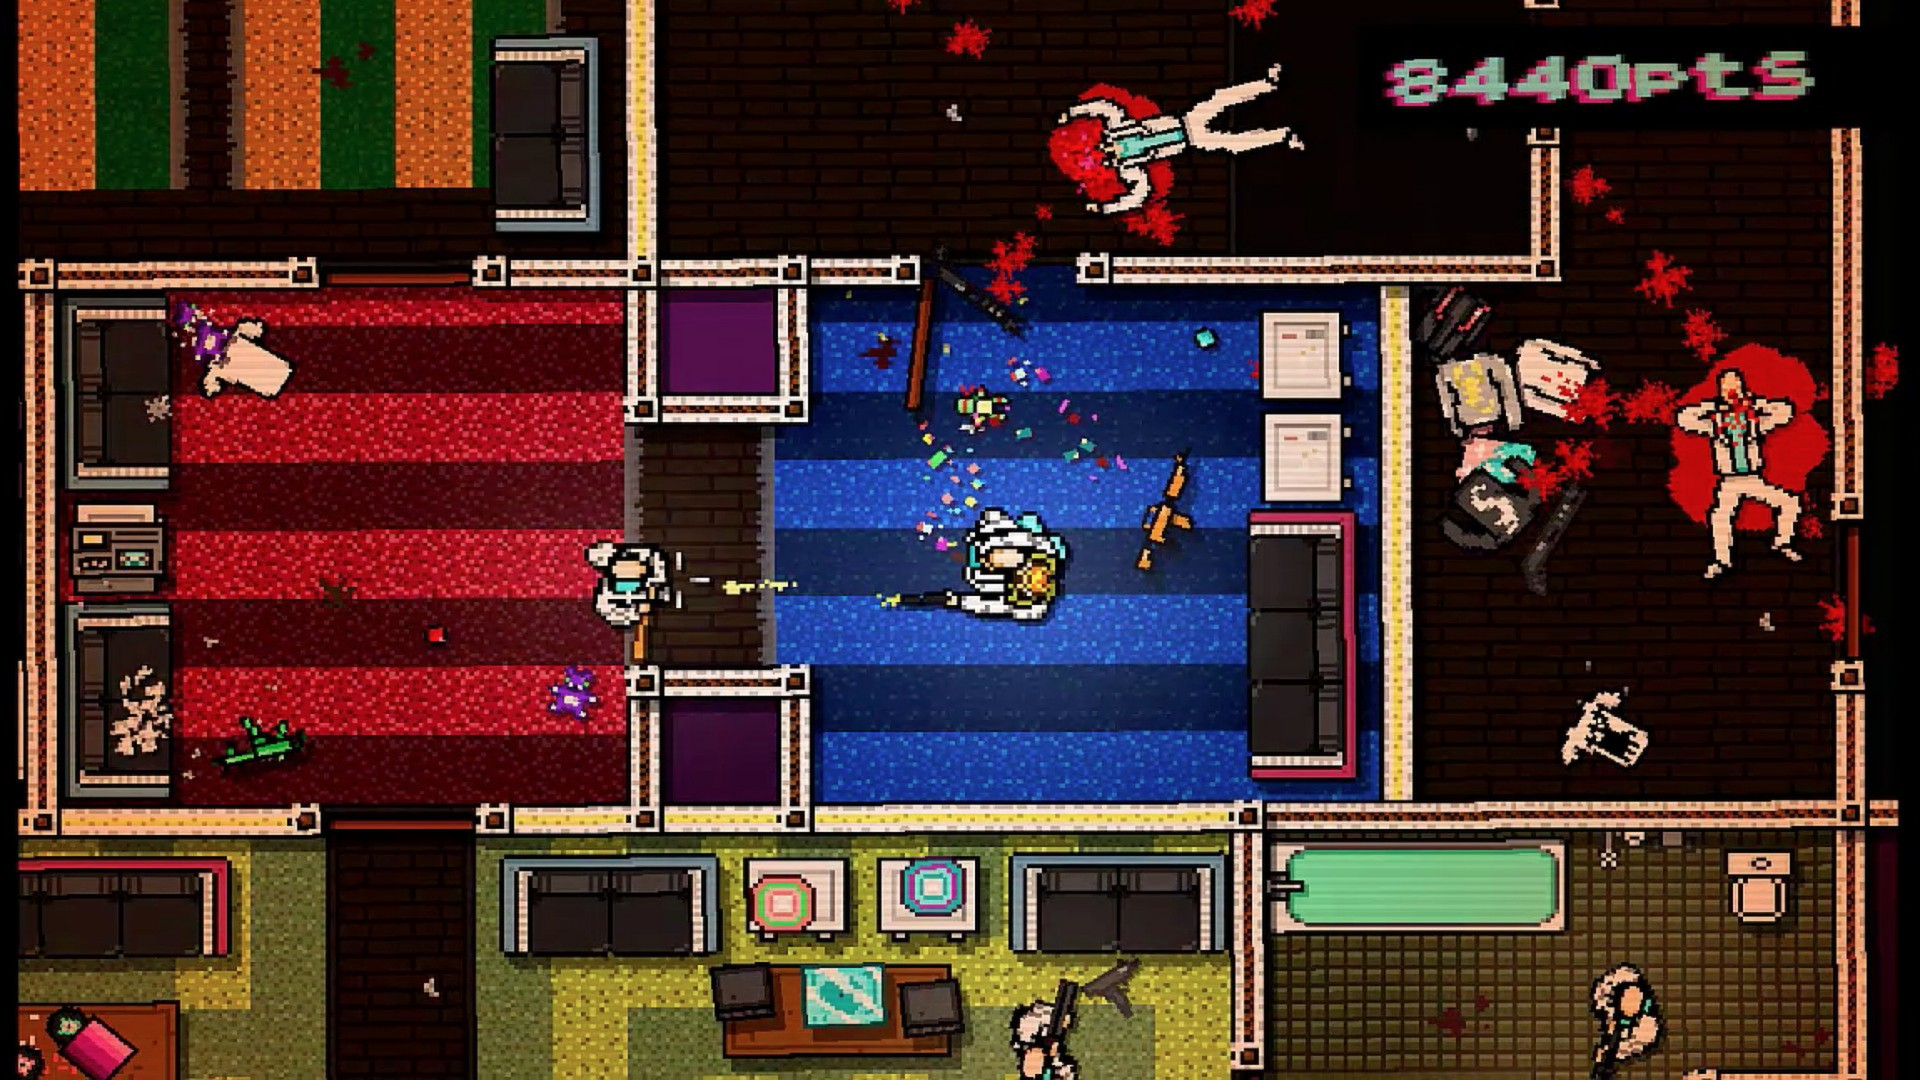 Hotline-Miami-a